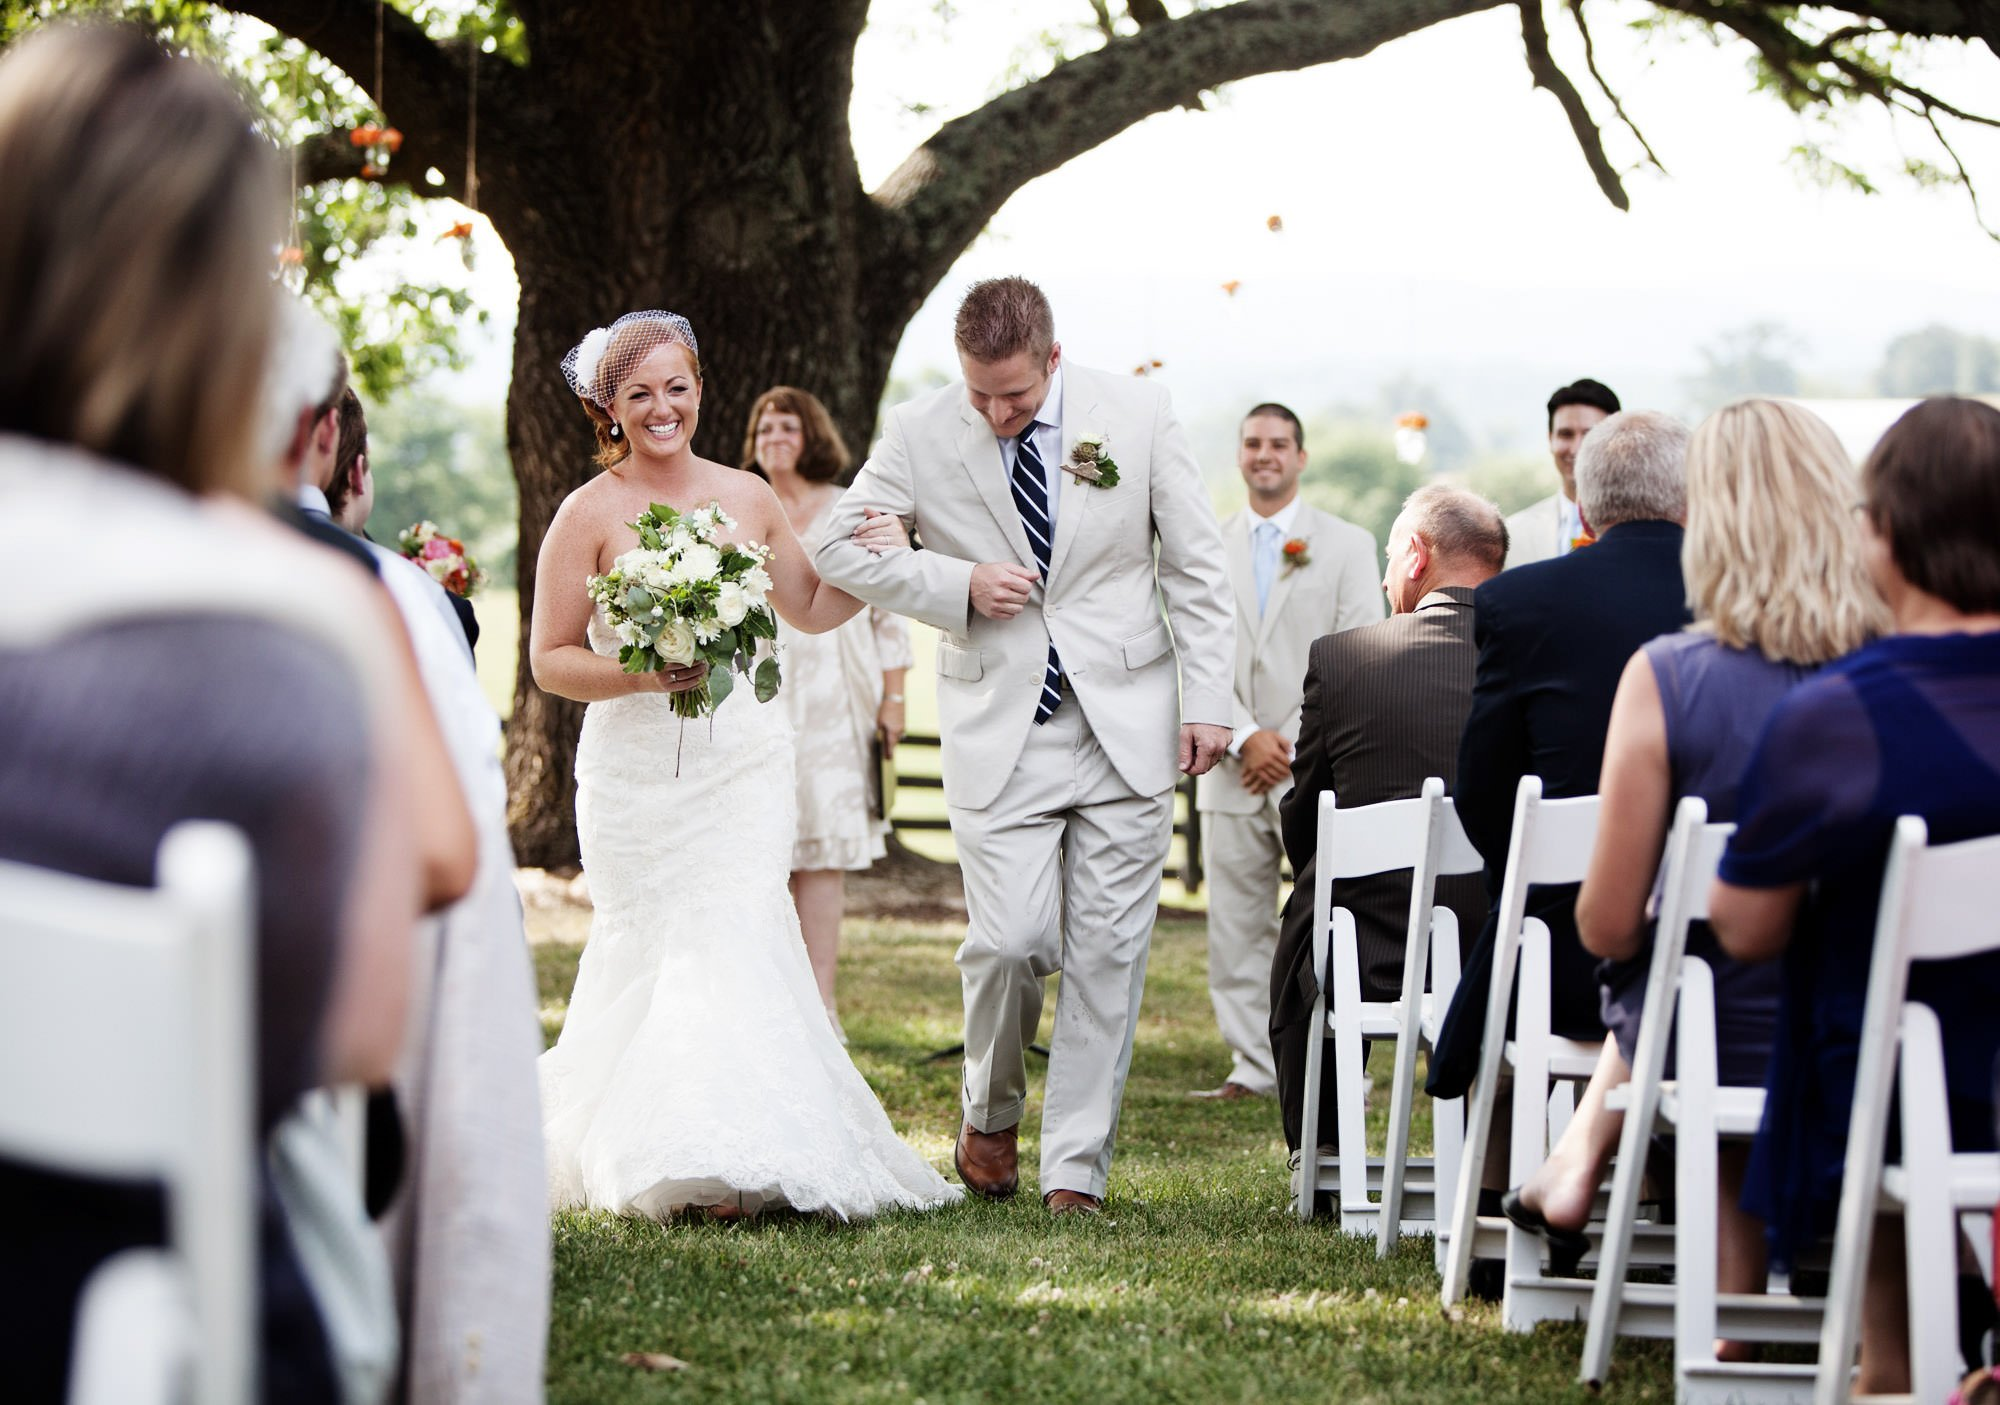 The couple walks down the aisle following the wedding ceremony at Marriott Ranch.